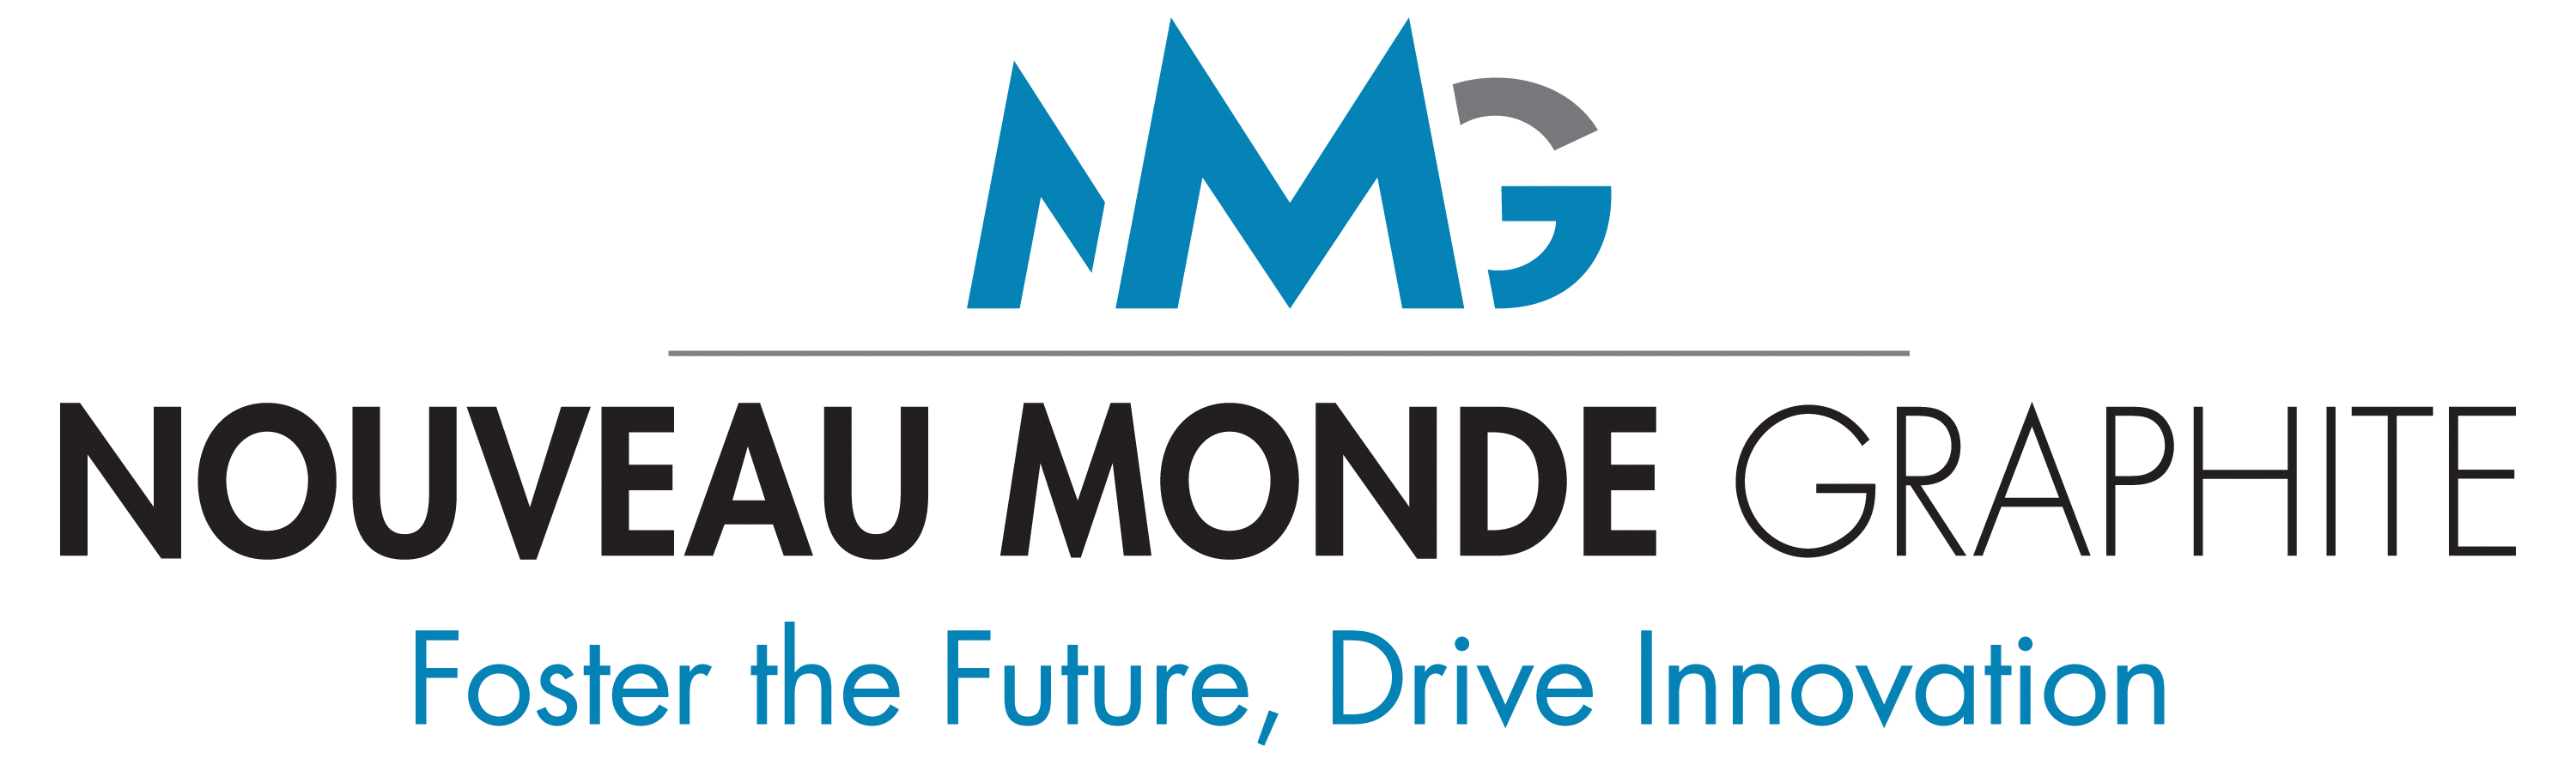 Nouveau Monde Provides an Update on Its Strategy to Produce Spherical Graphite Destined to Lithium-ion Batteries Market